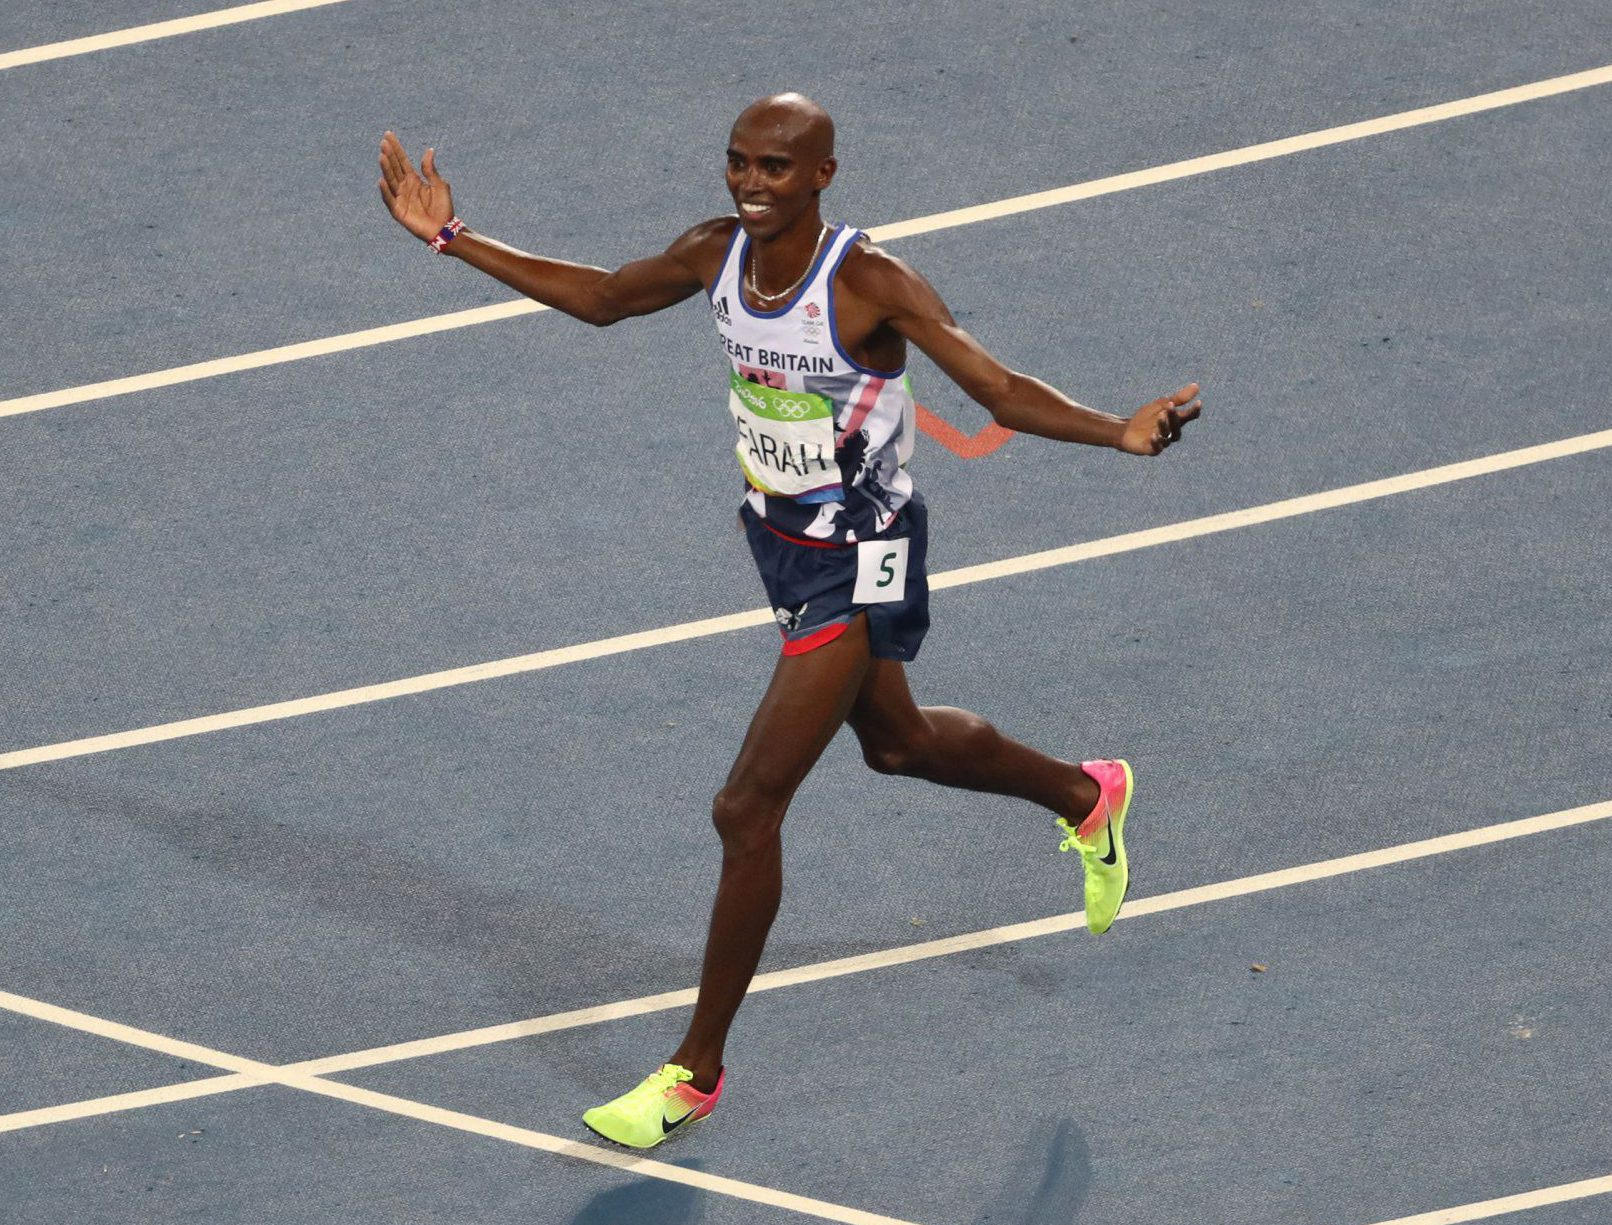 File photo dated 20-08-2016 of Great Britain's Mo Farah celebrates winning the Men's 5000m Final at the Olympic Stadium on the fifteenth day of the Rio Olympic Games, Brazil. PRESS ASSOCIATION Photo. Issue date: Monday August 22, 2016.  Farah, who is set to move over to the road after next year's World Championships in London, wrote his name into history with another two gold medals as he defended his 5,000m and 10,000m crowns, the second man to do so after Lasse Viren. See PA story OLYMPICS Athletics Review. Photo credit should read Owen Humphreys/PA Wire.